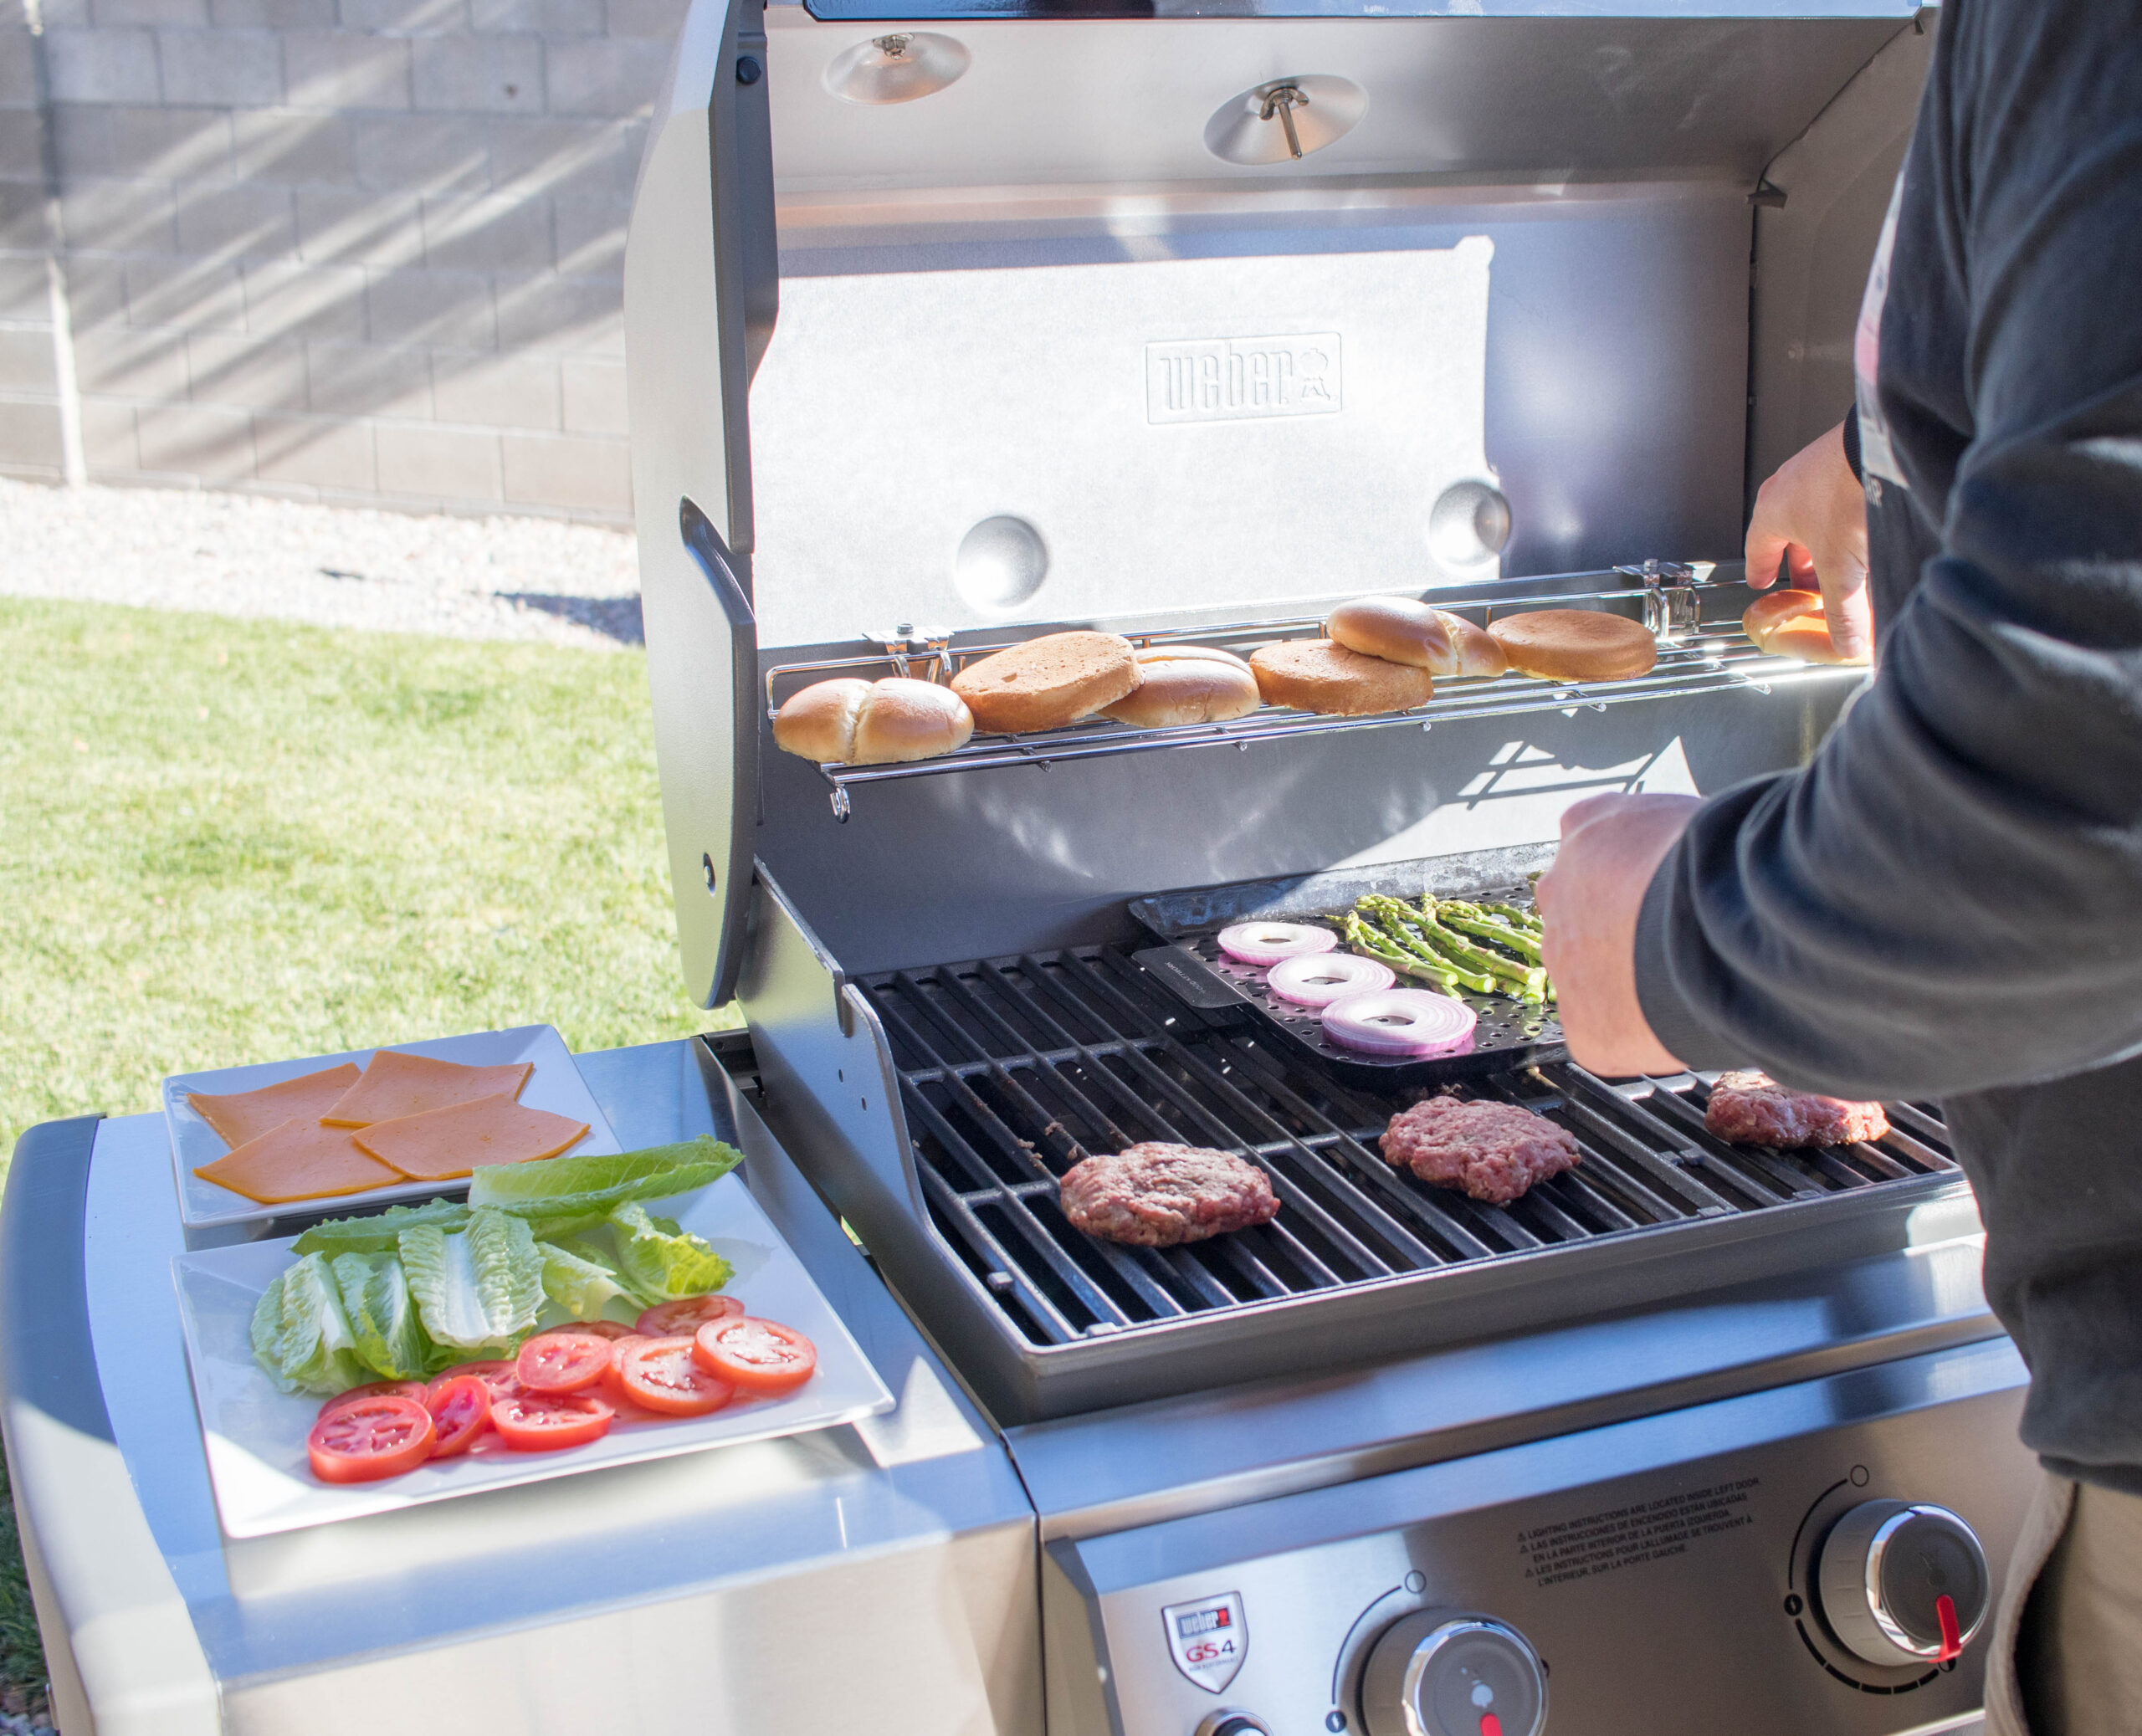 tailgating food ideas at home #tailgatingfood #grilling #webergrills